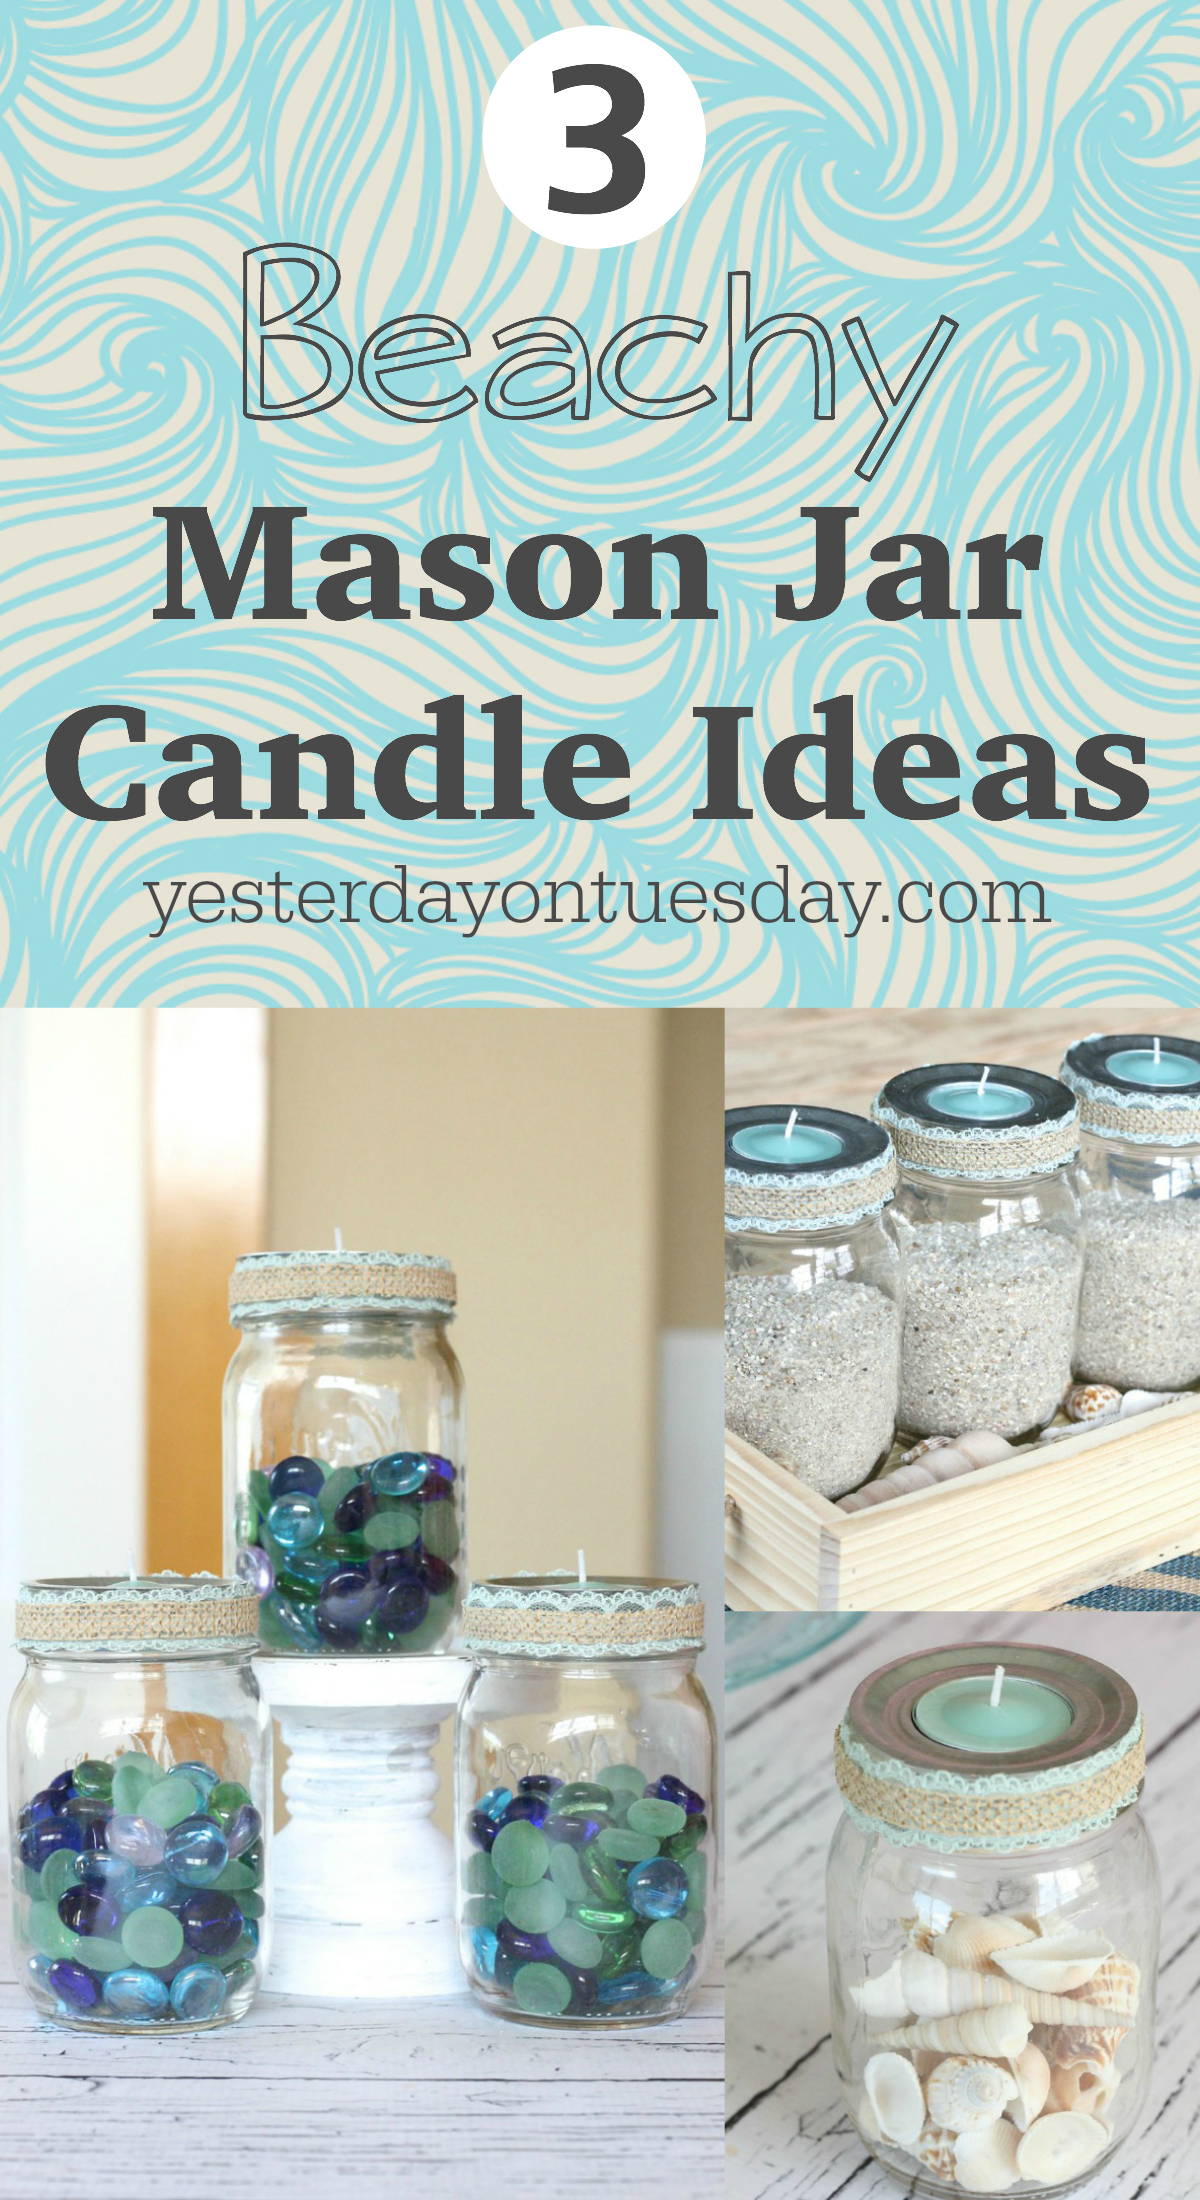 3 Beachy Mason Jar Candle Ideas